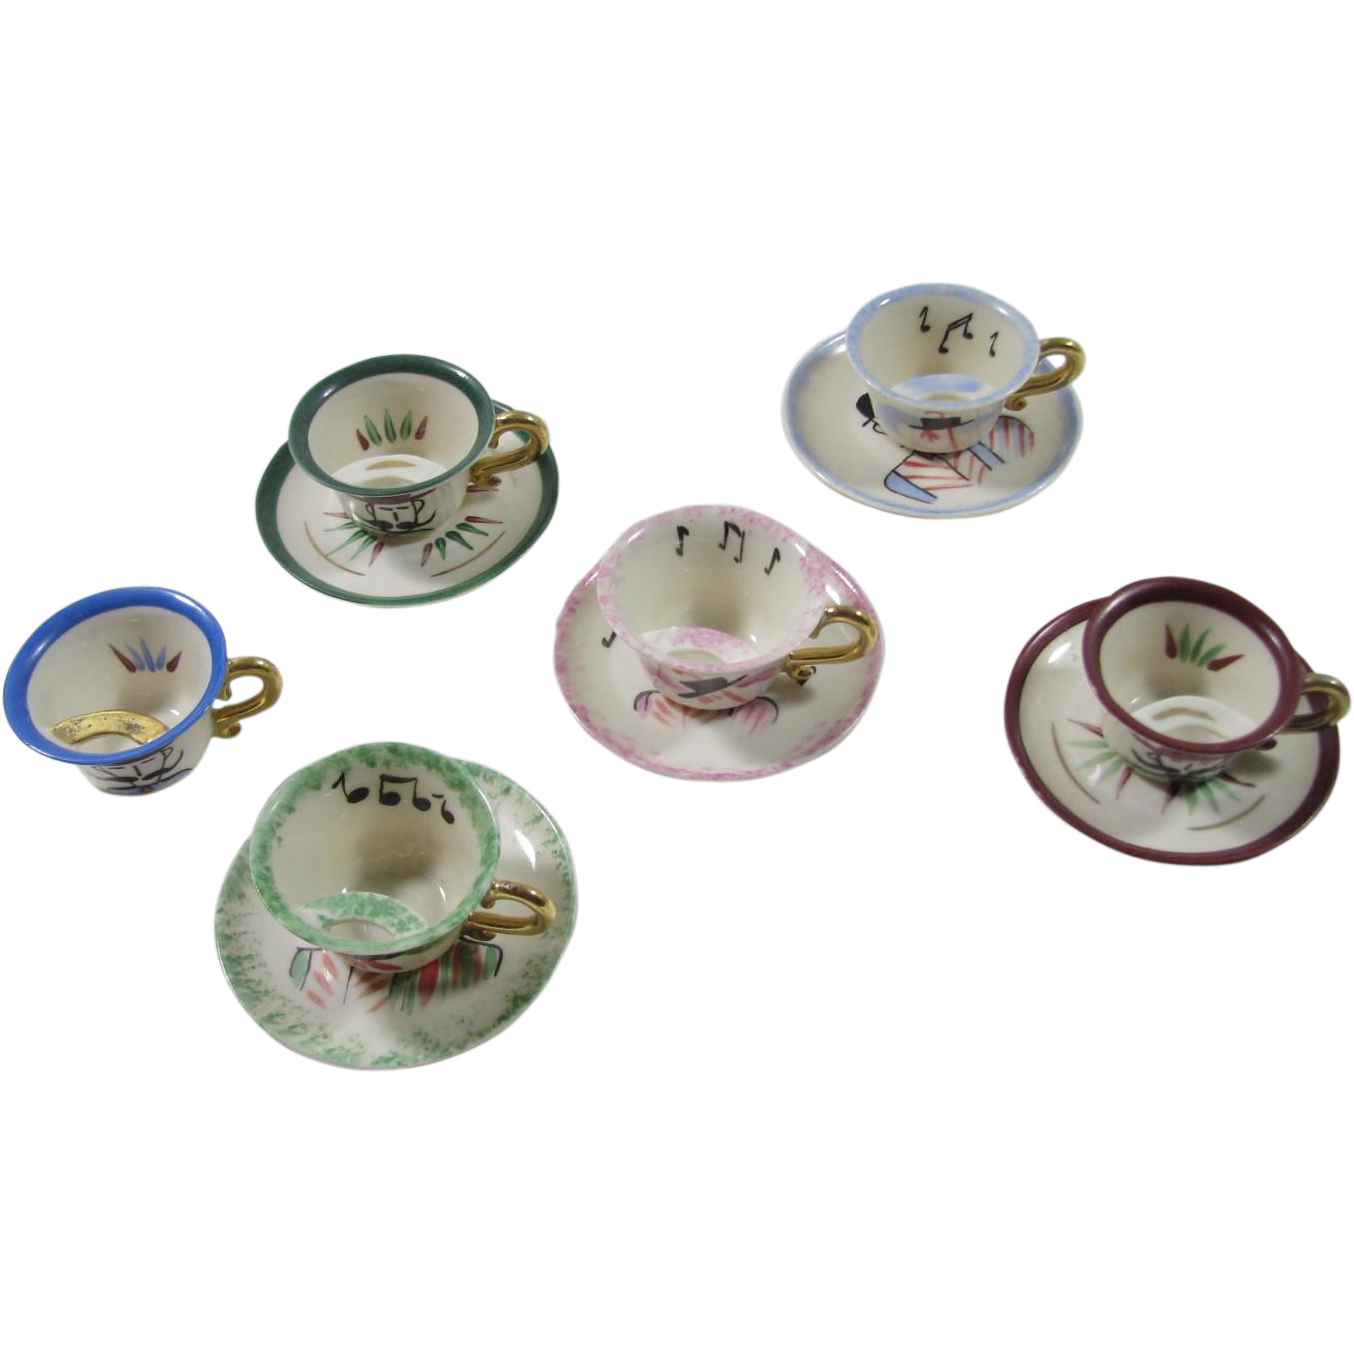 Miniature Mustache/Moustache Cup and Saucer set